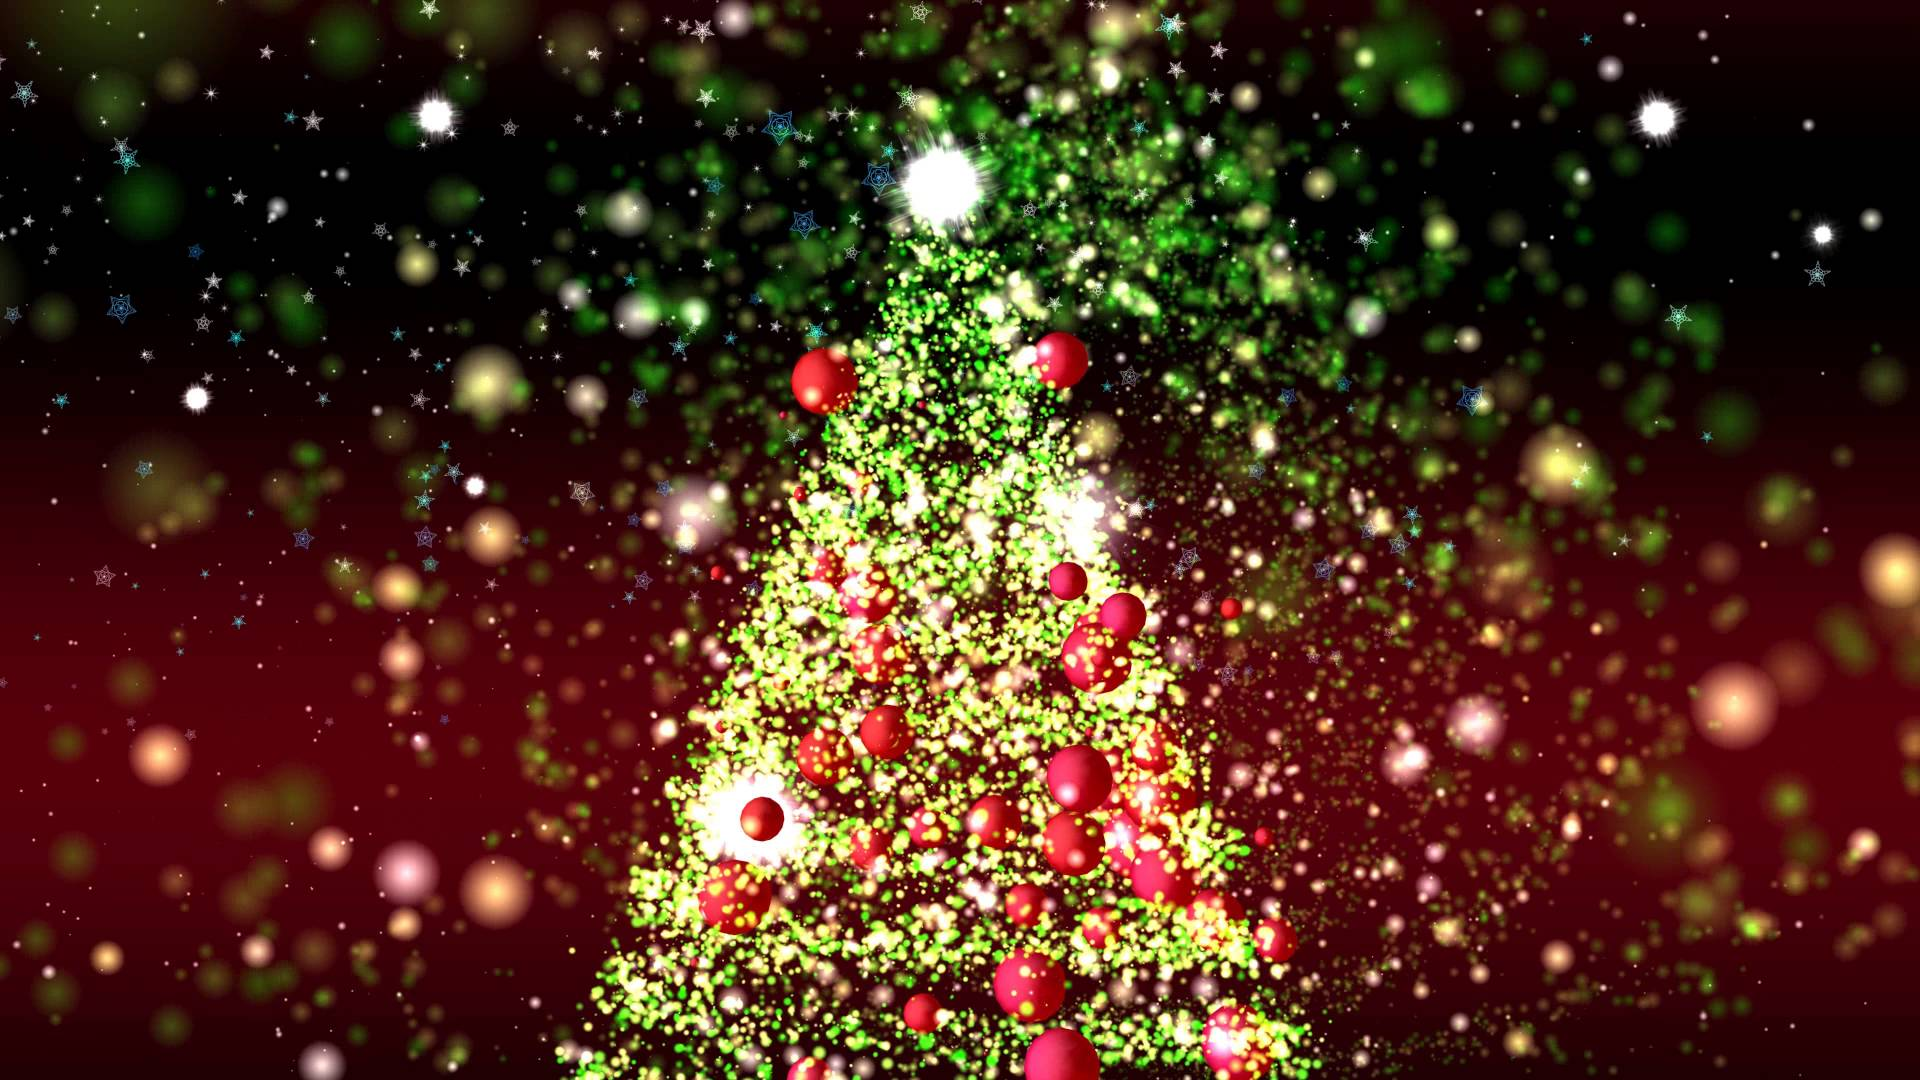 4K Christmas Tree Wallpapers High Quality